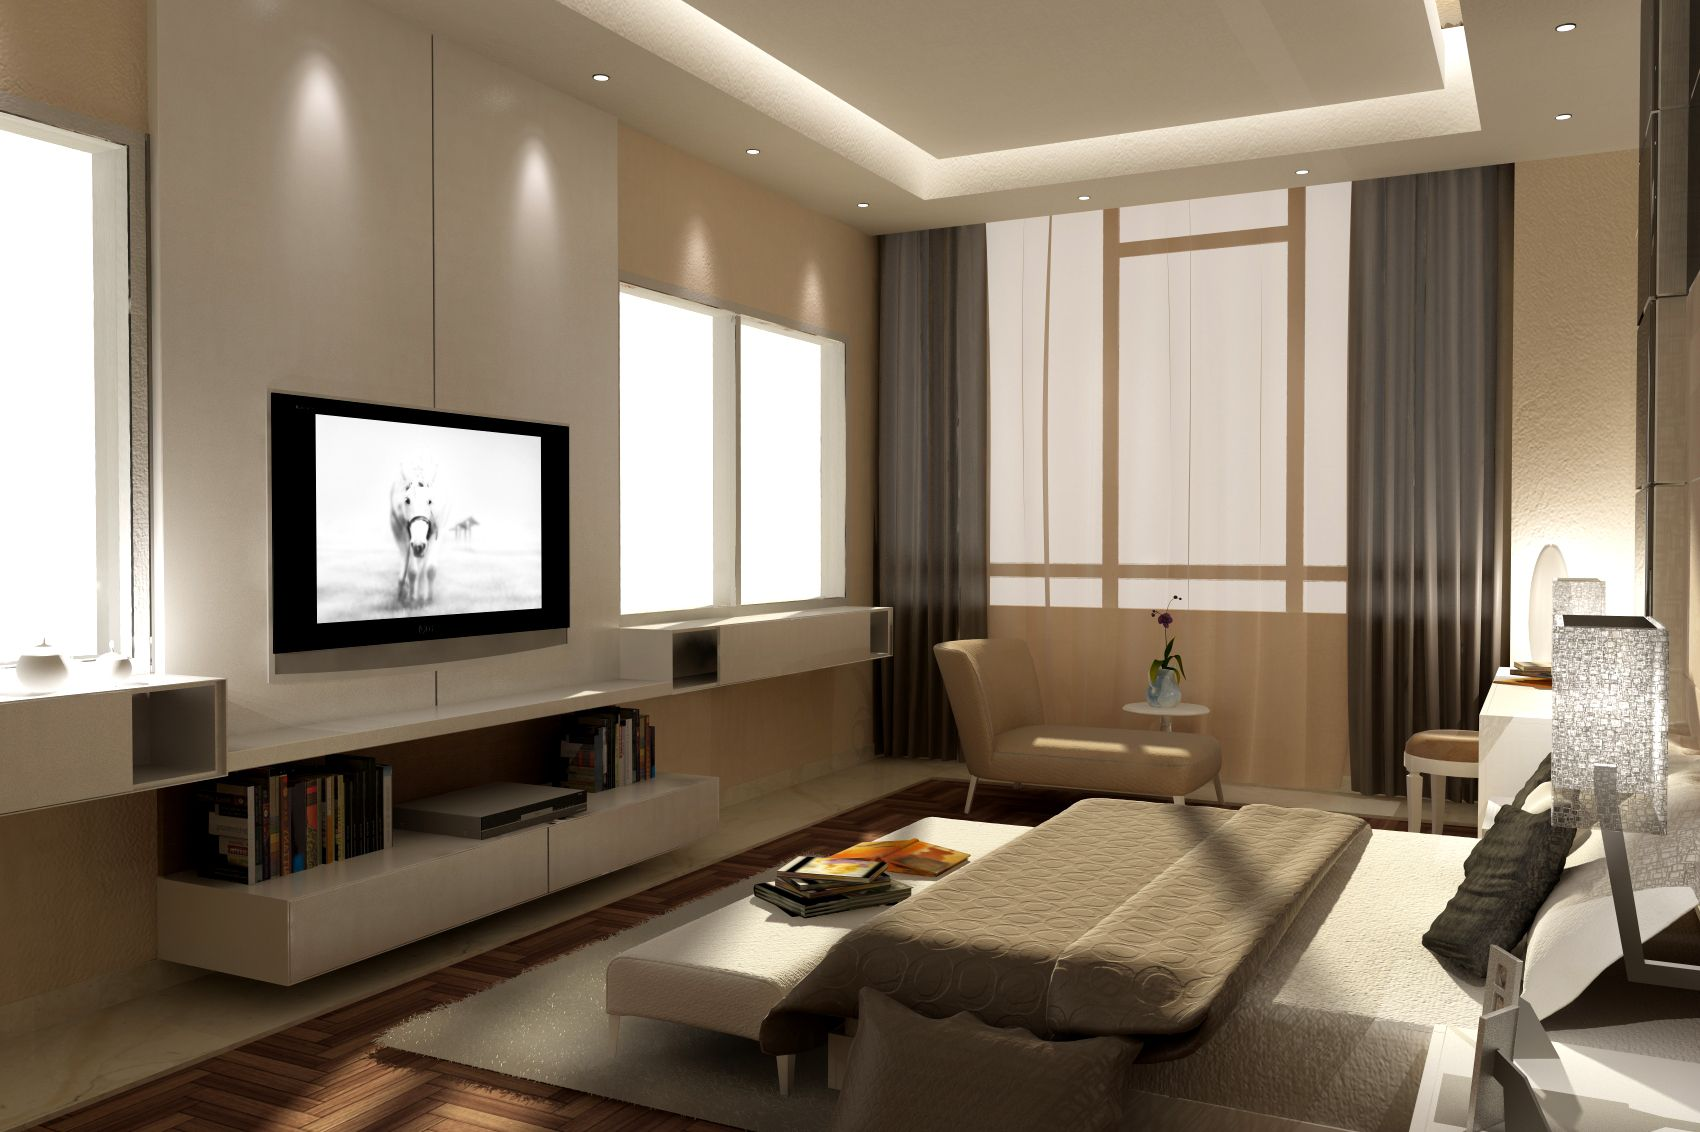 Bedroom modern bedroom interior design 3d max 3d for Bedroom interior images